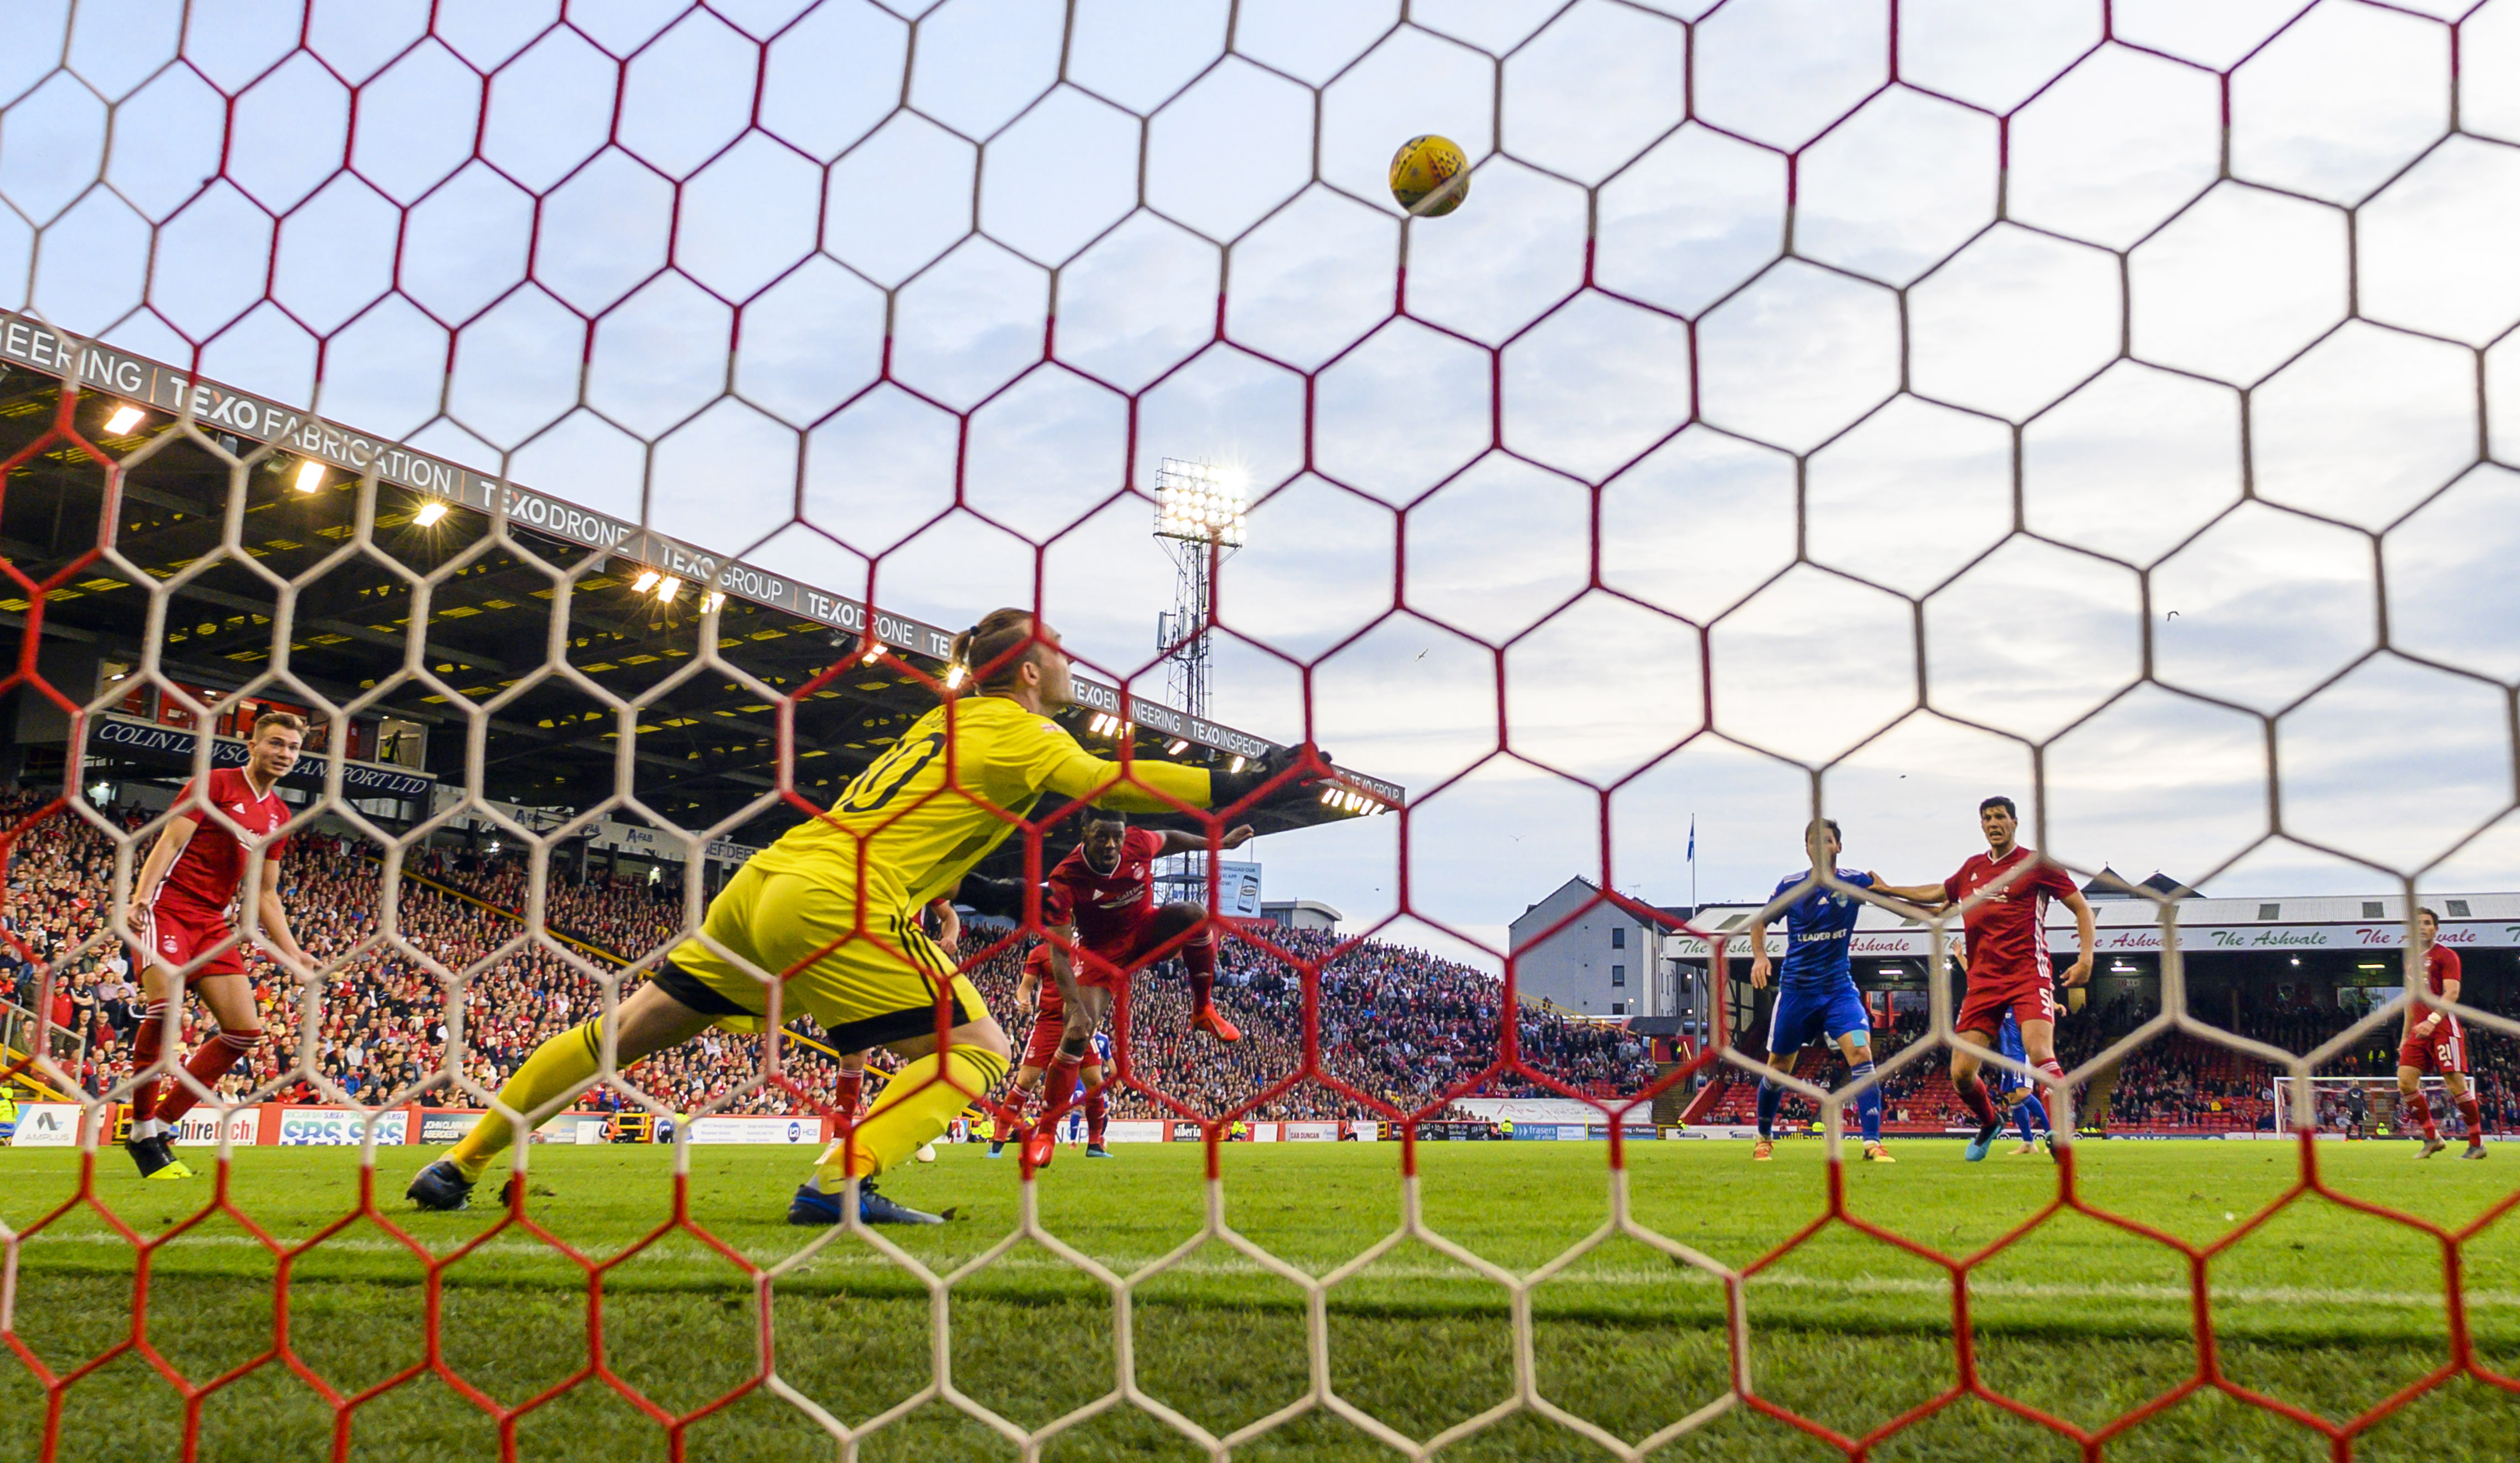 Aberdeen have another Europa League qualifying campaign on the horizon.